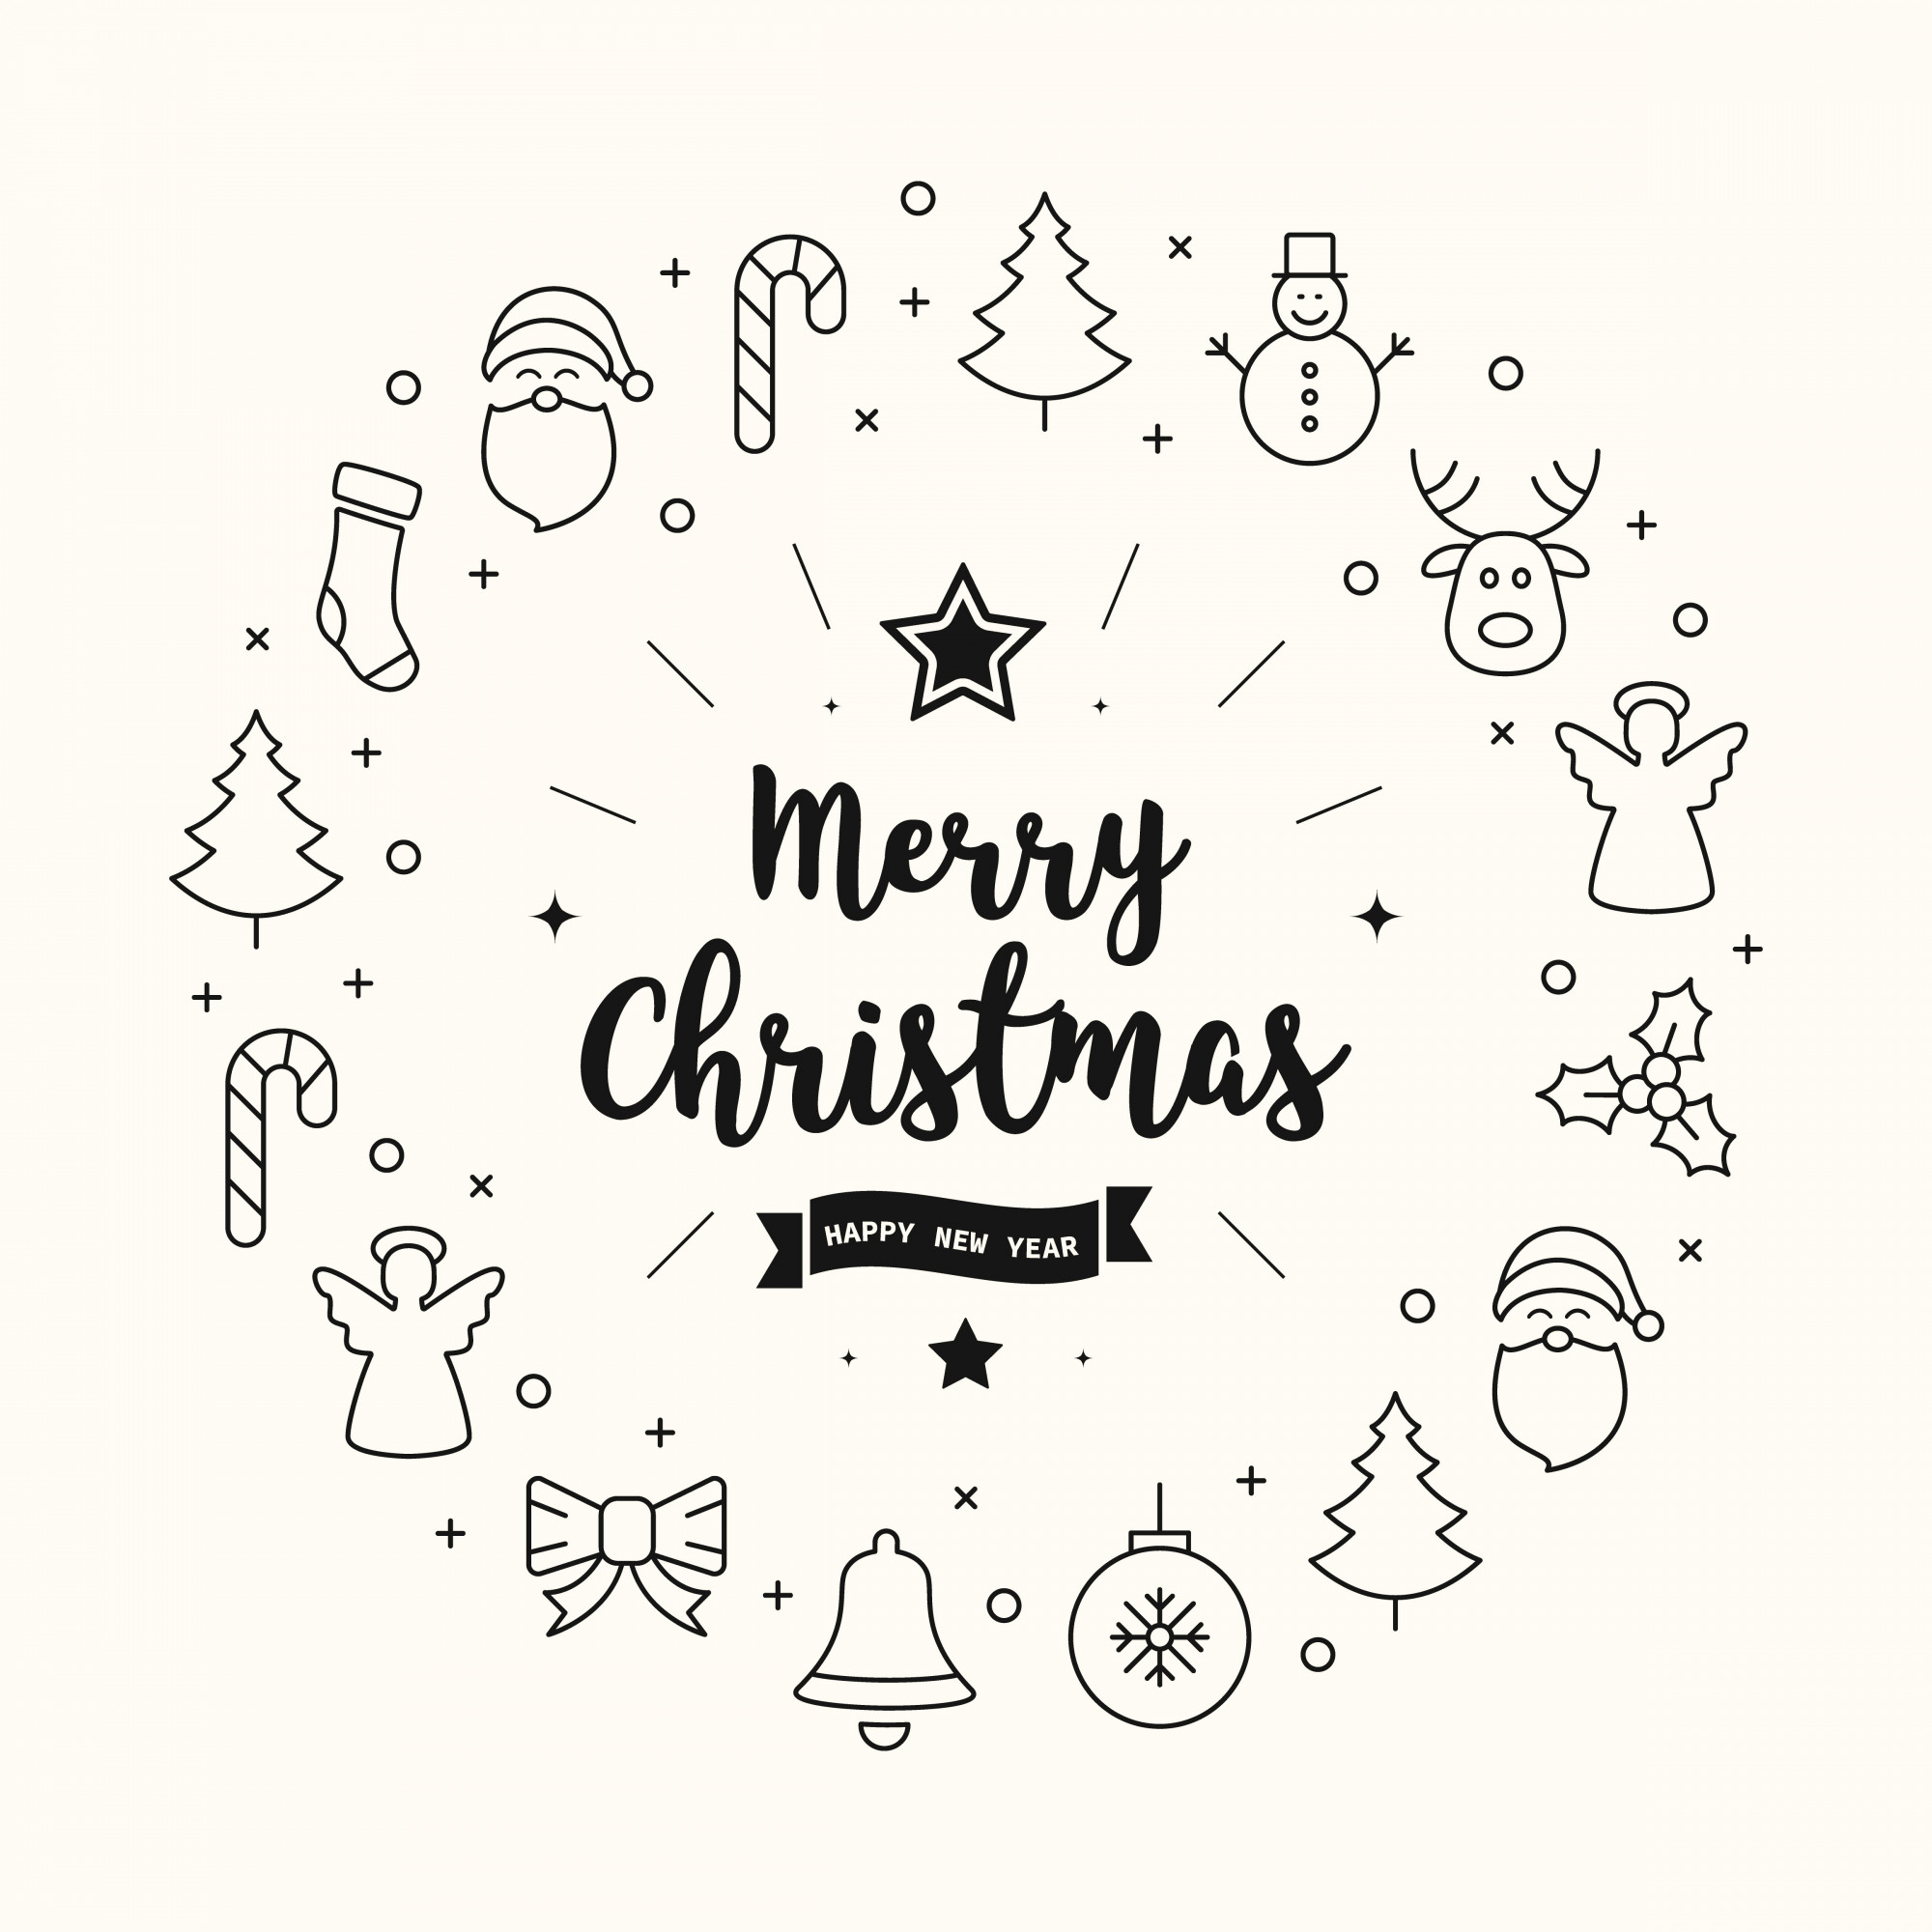 Merry christmas greeting icons elements circle background